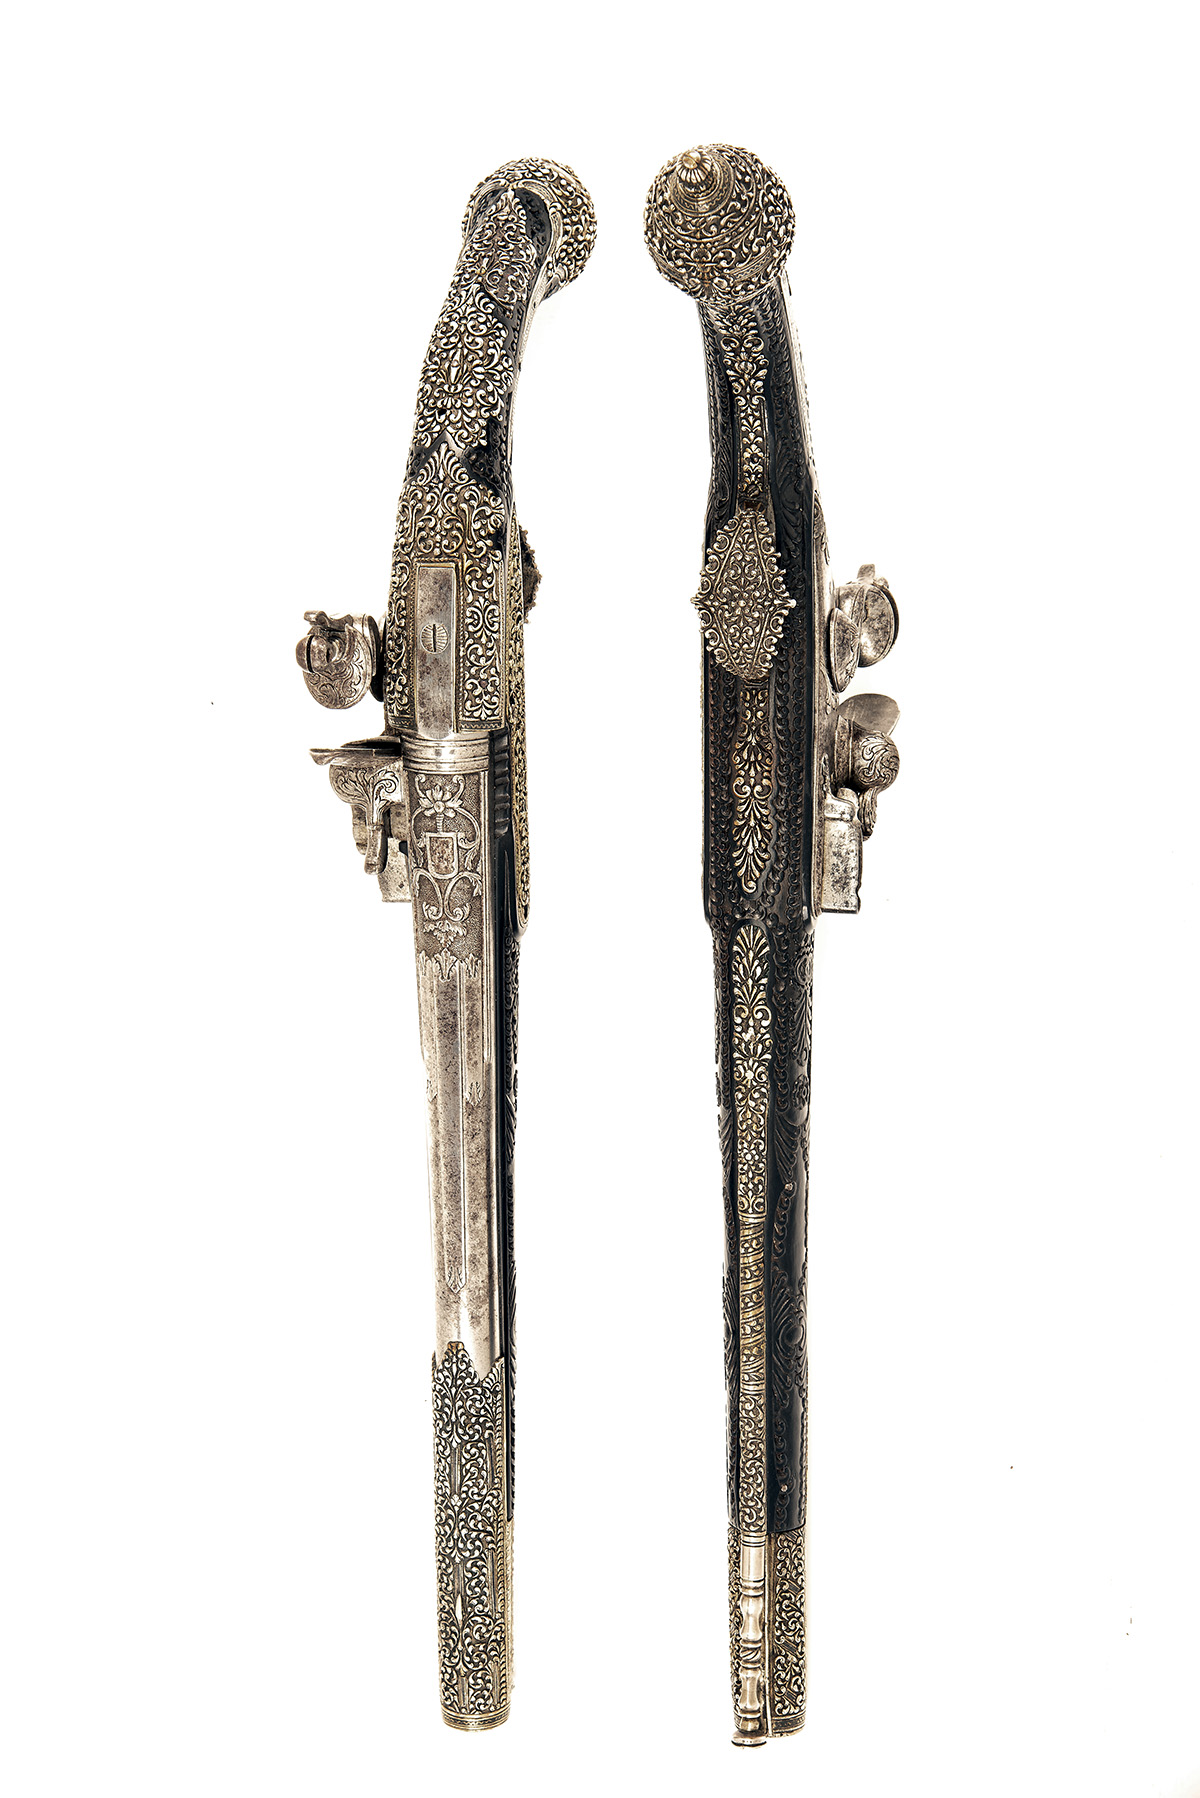 A FINE PAIR OF 22-BORE FLINTLOCK HOLSTER-PISTOL WITH EBONY STOCKS AND NIELLO DECORATION, UNSIGNED, - Image 3 of 10